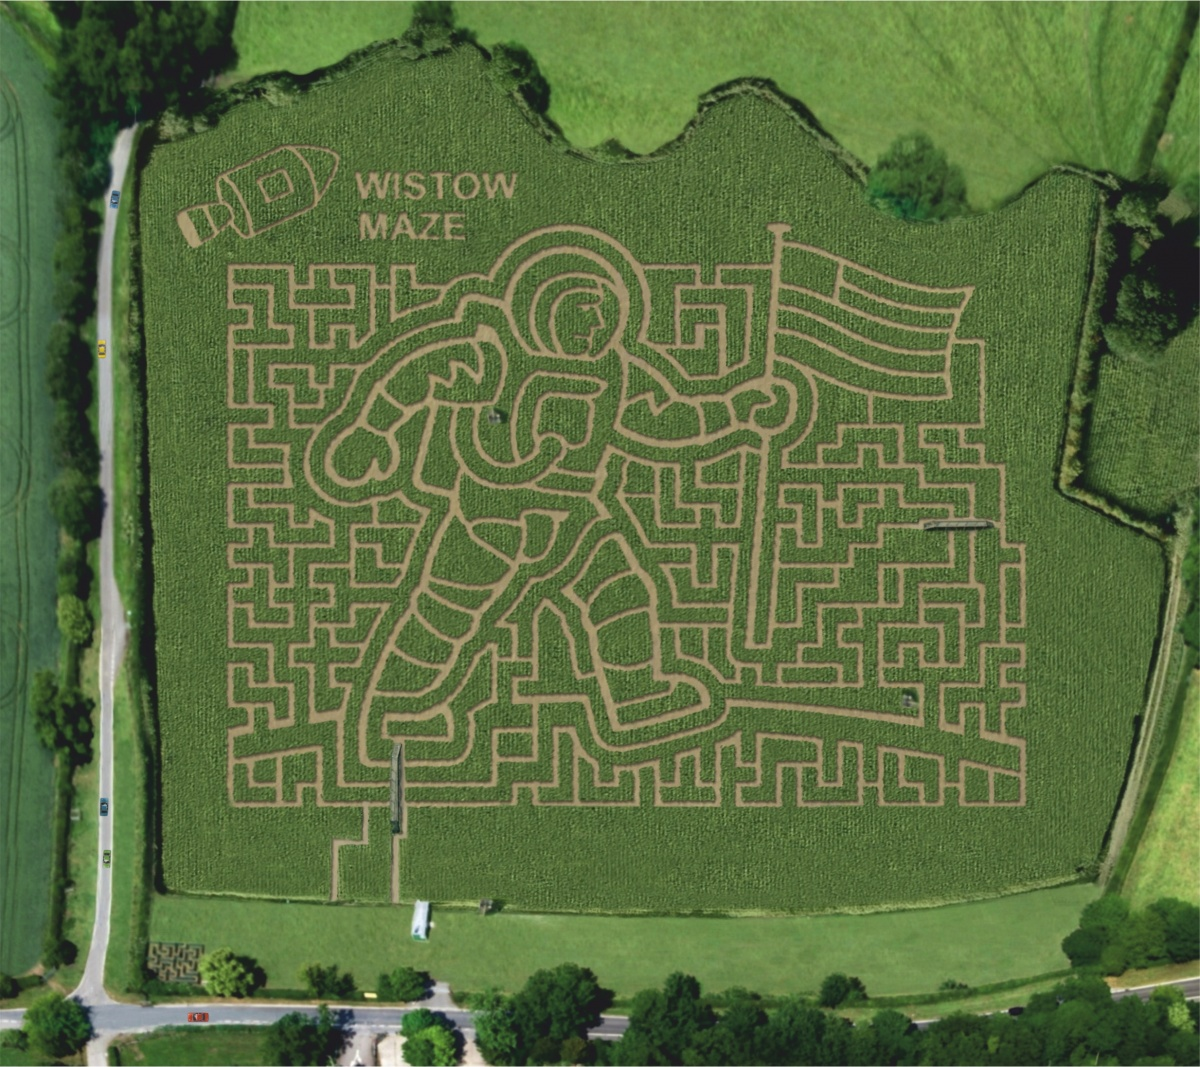 The aerial view of the moon landing pattern maze at Wistow Maze